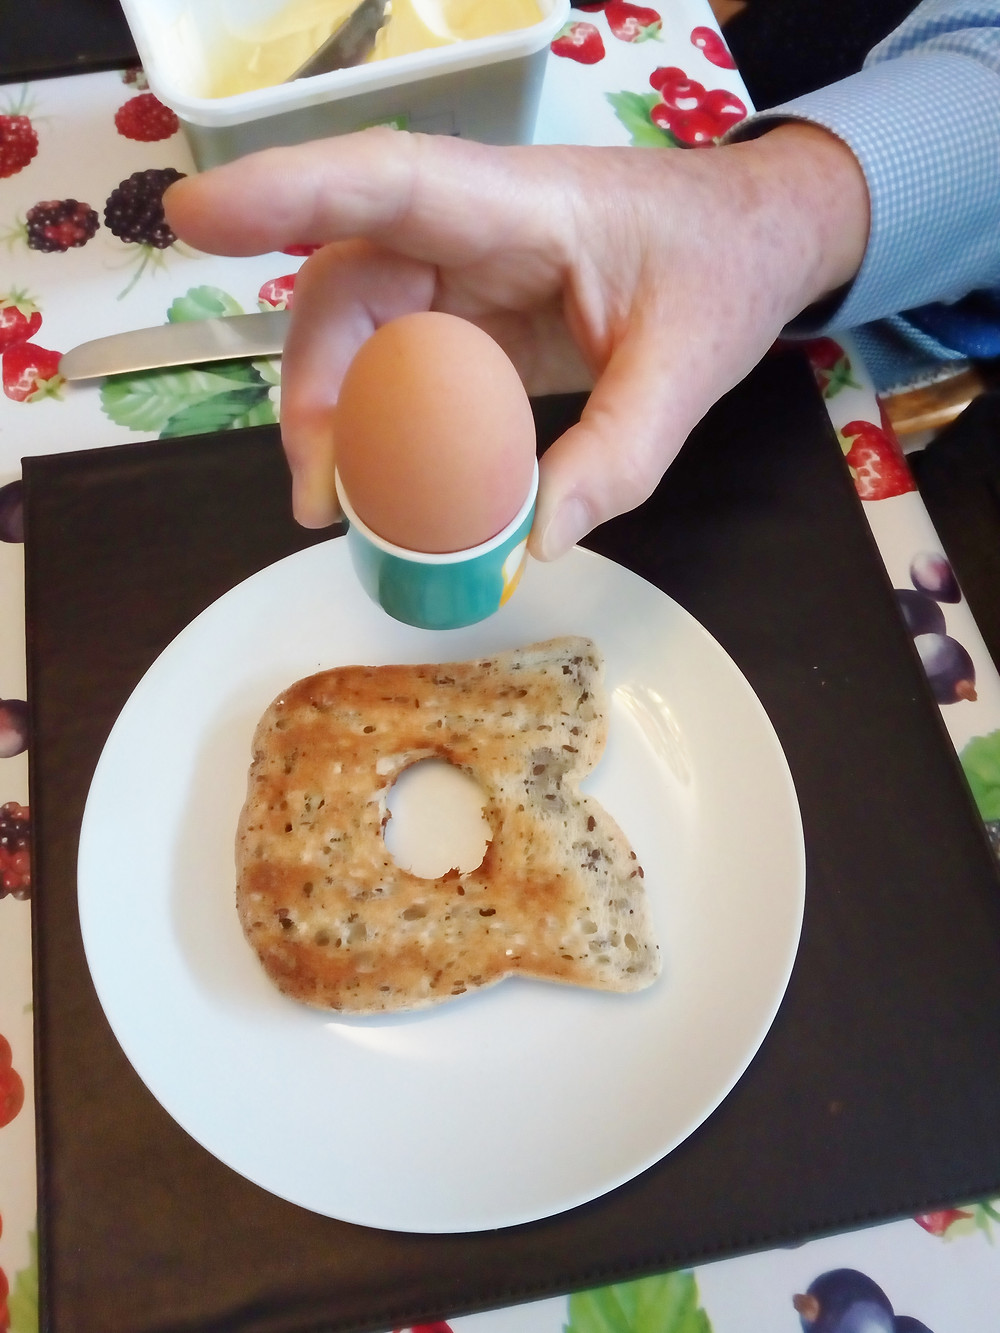 Where should the egg cup go?